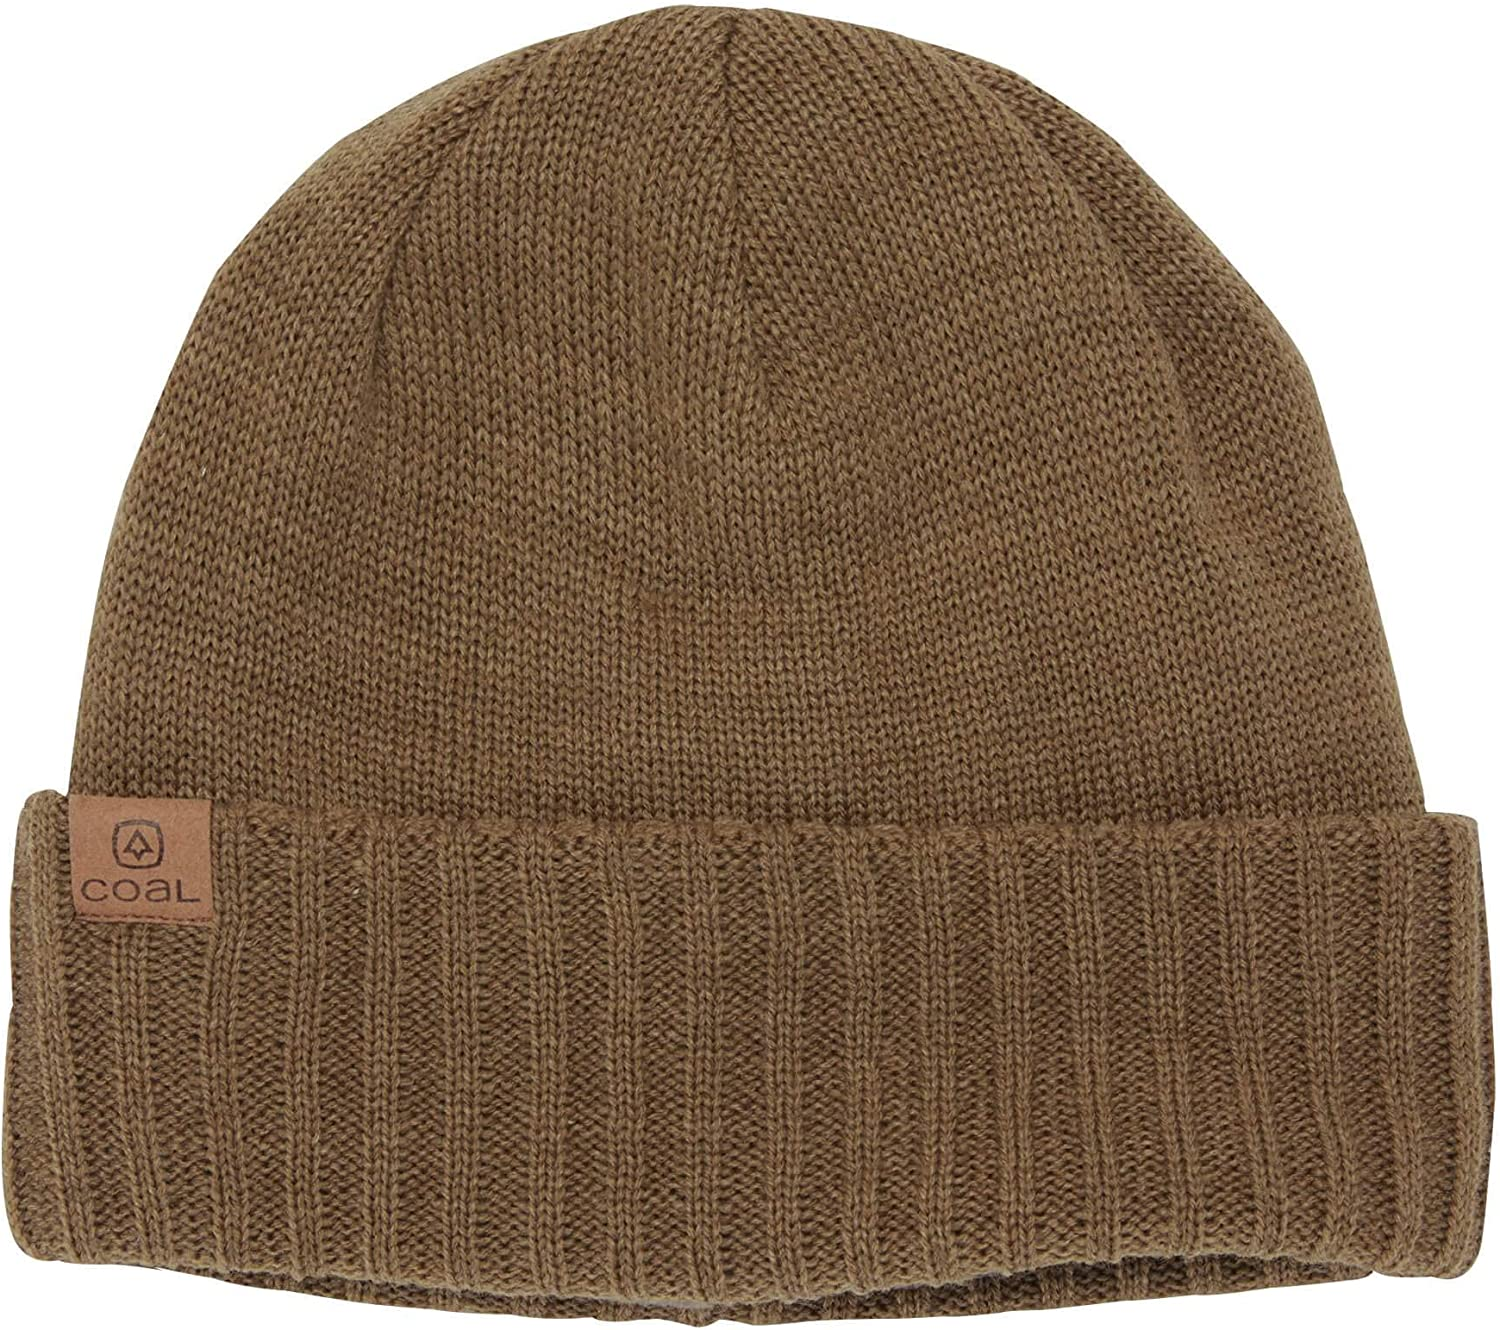 Coal Rogers Recycled Soft Knit Fleece Lined Beanie Hat